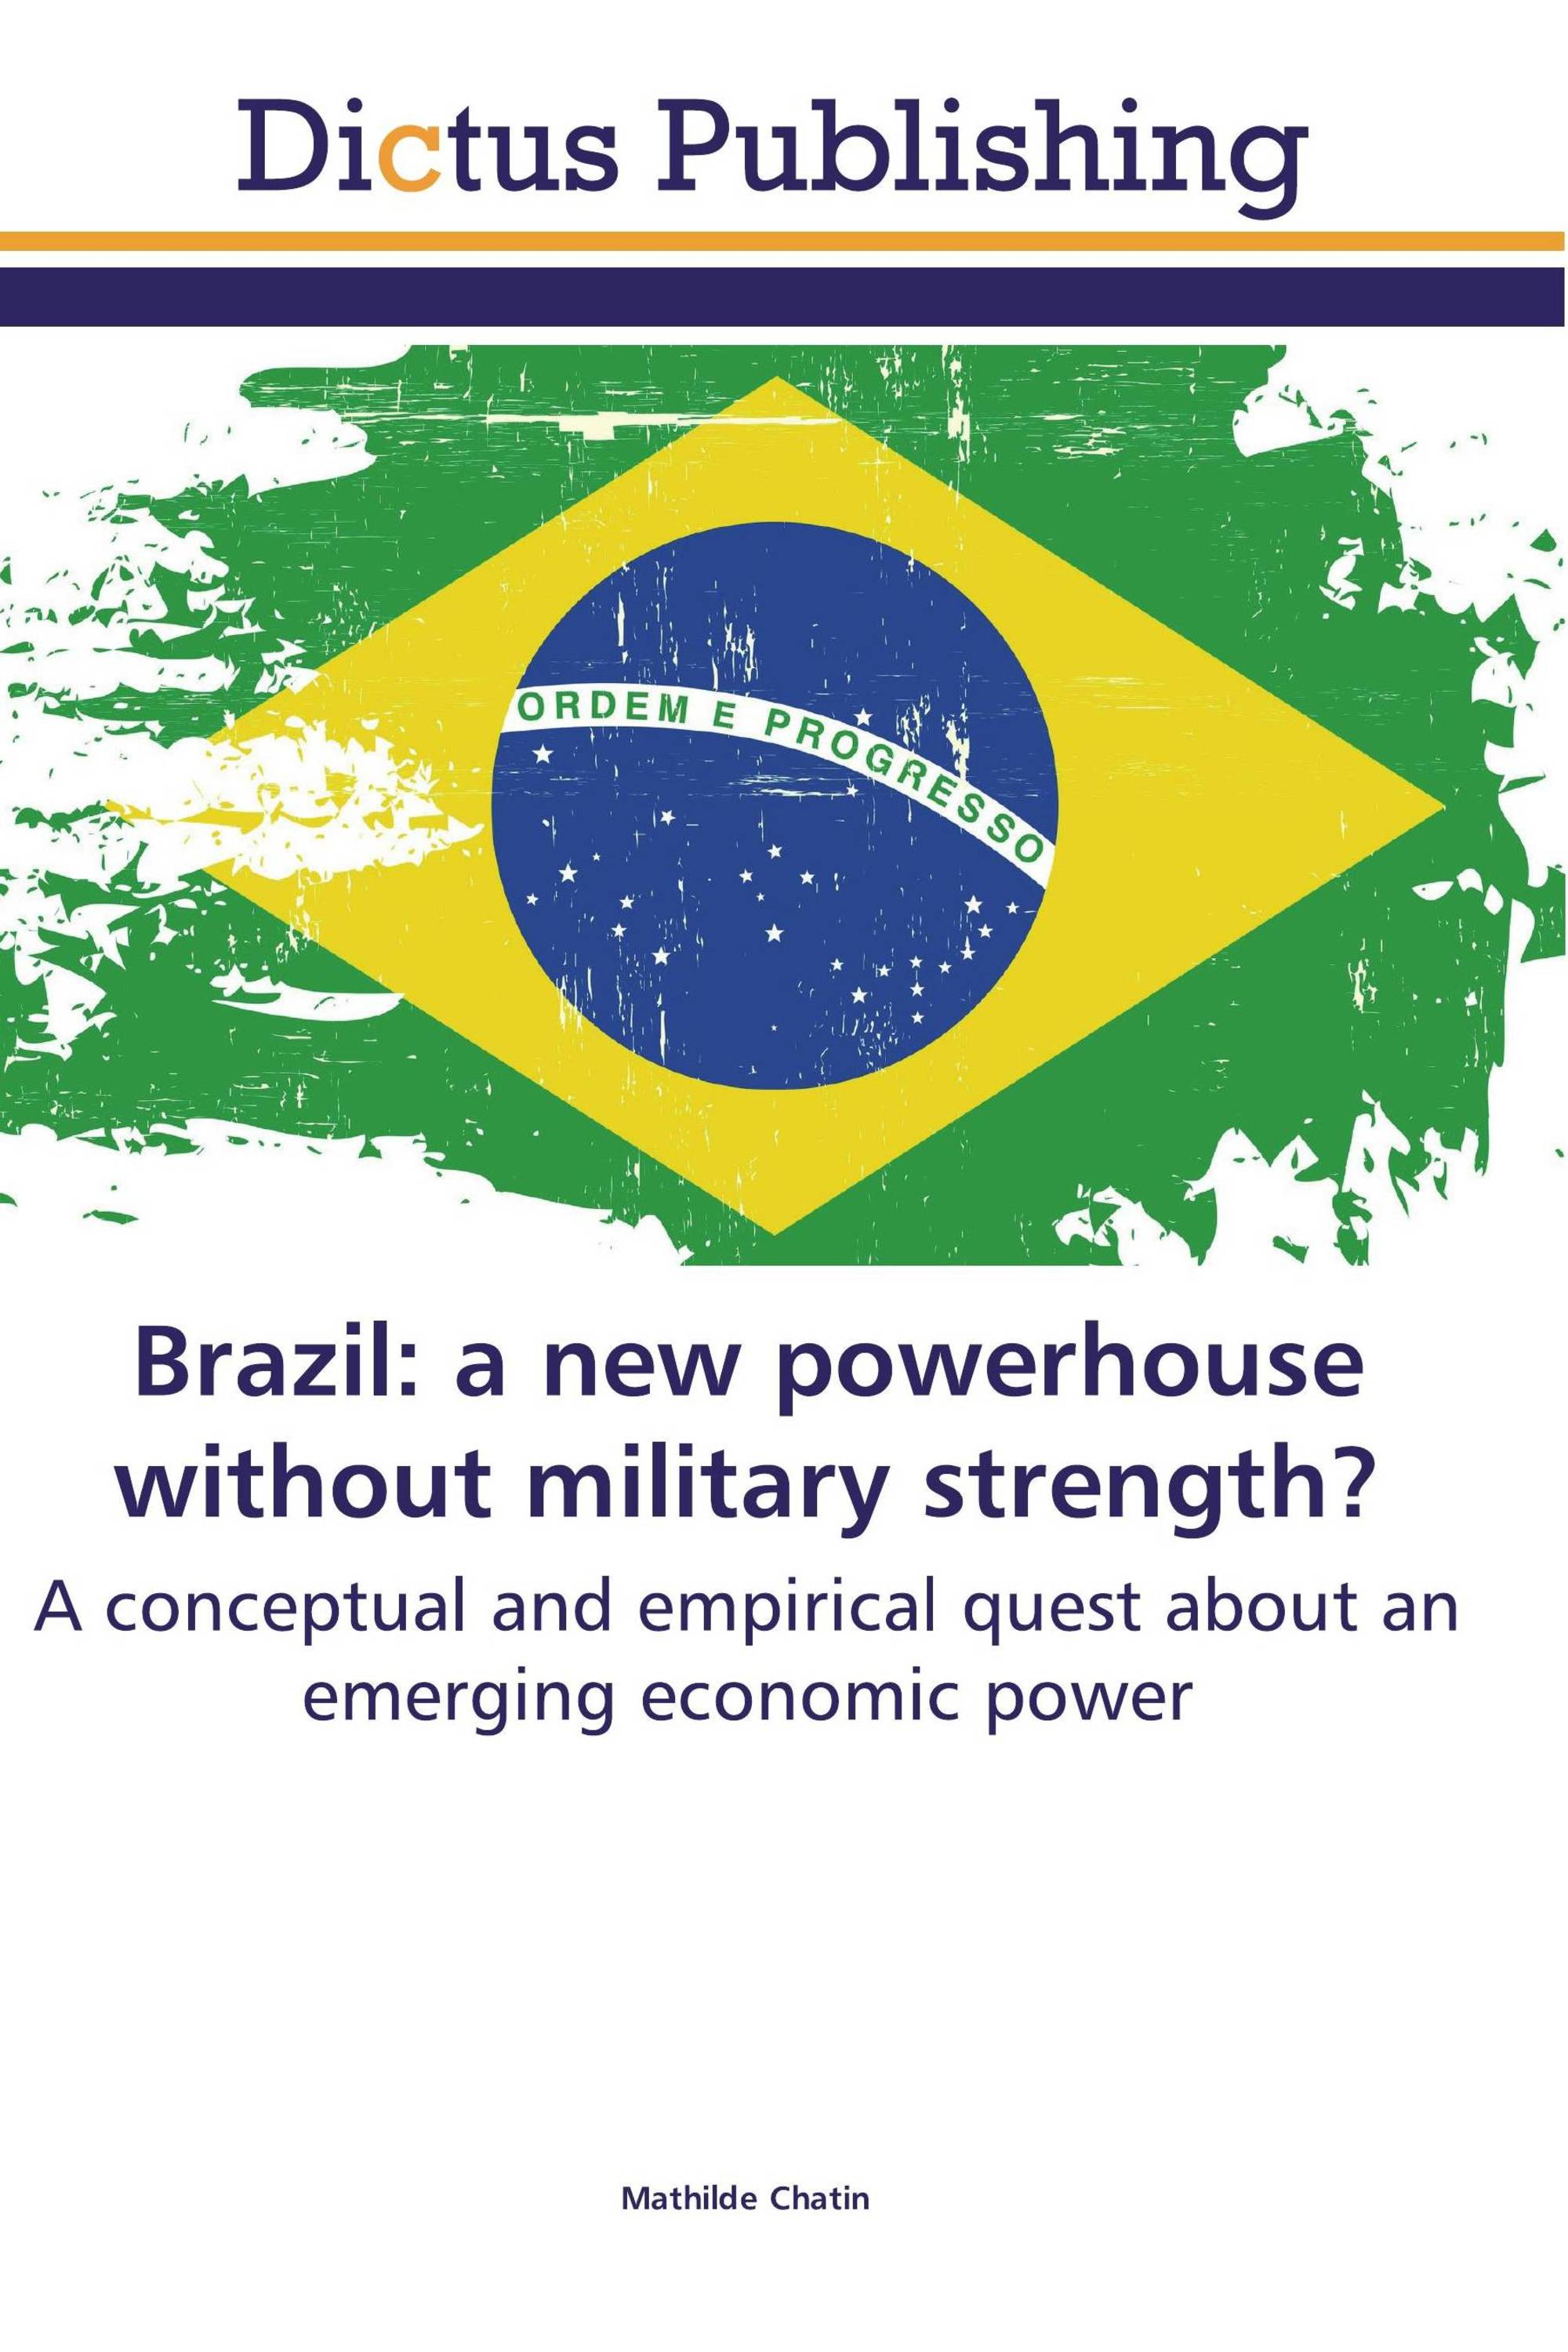 Brazil: a new powerhouse without military strength?